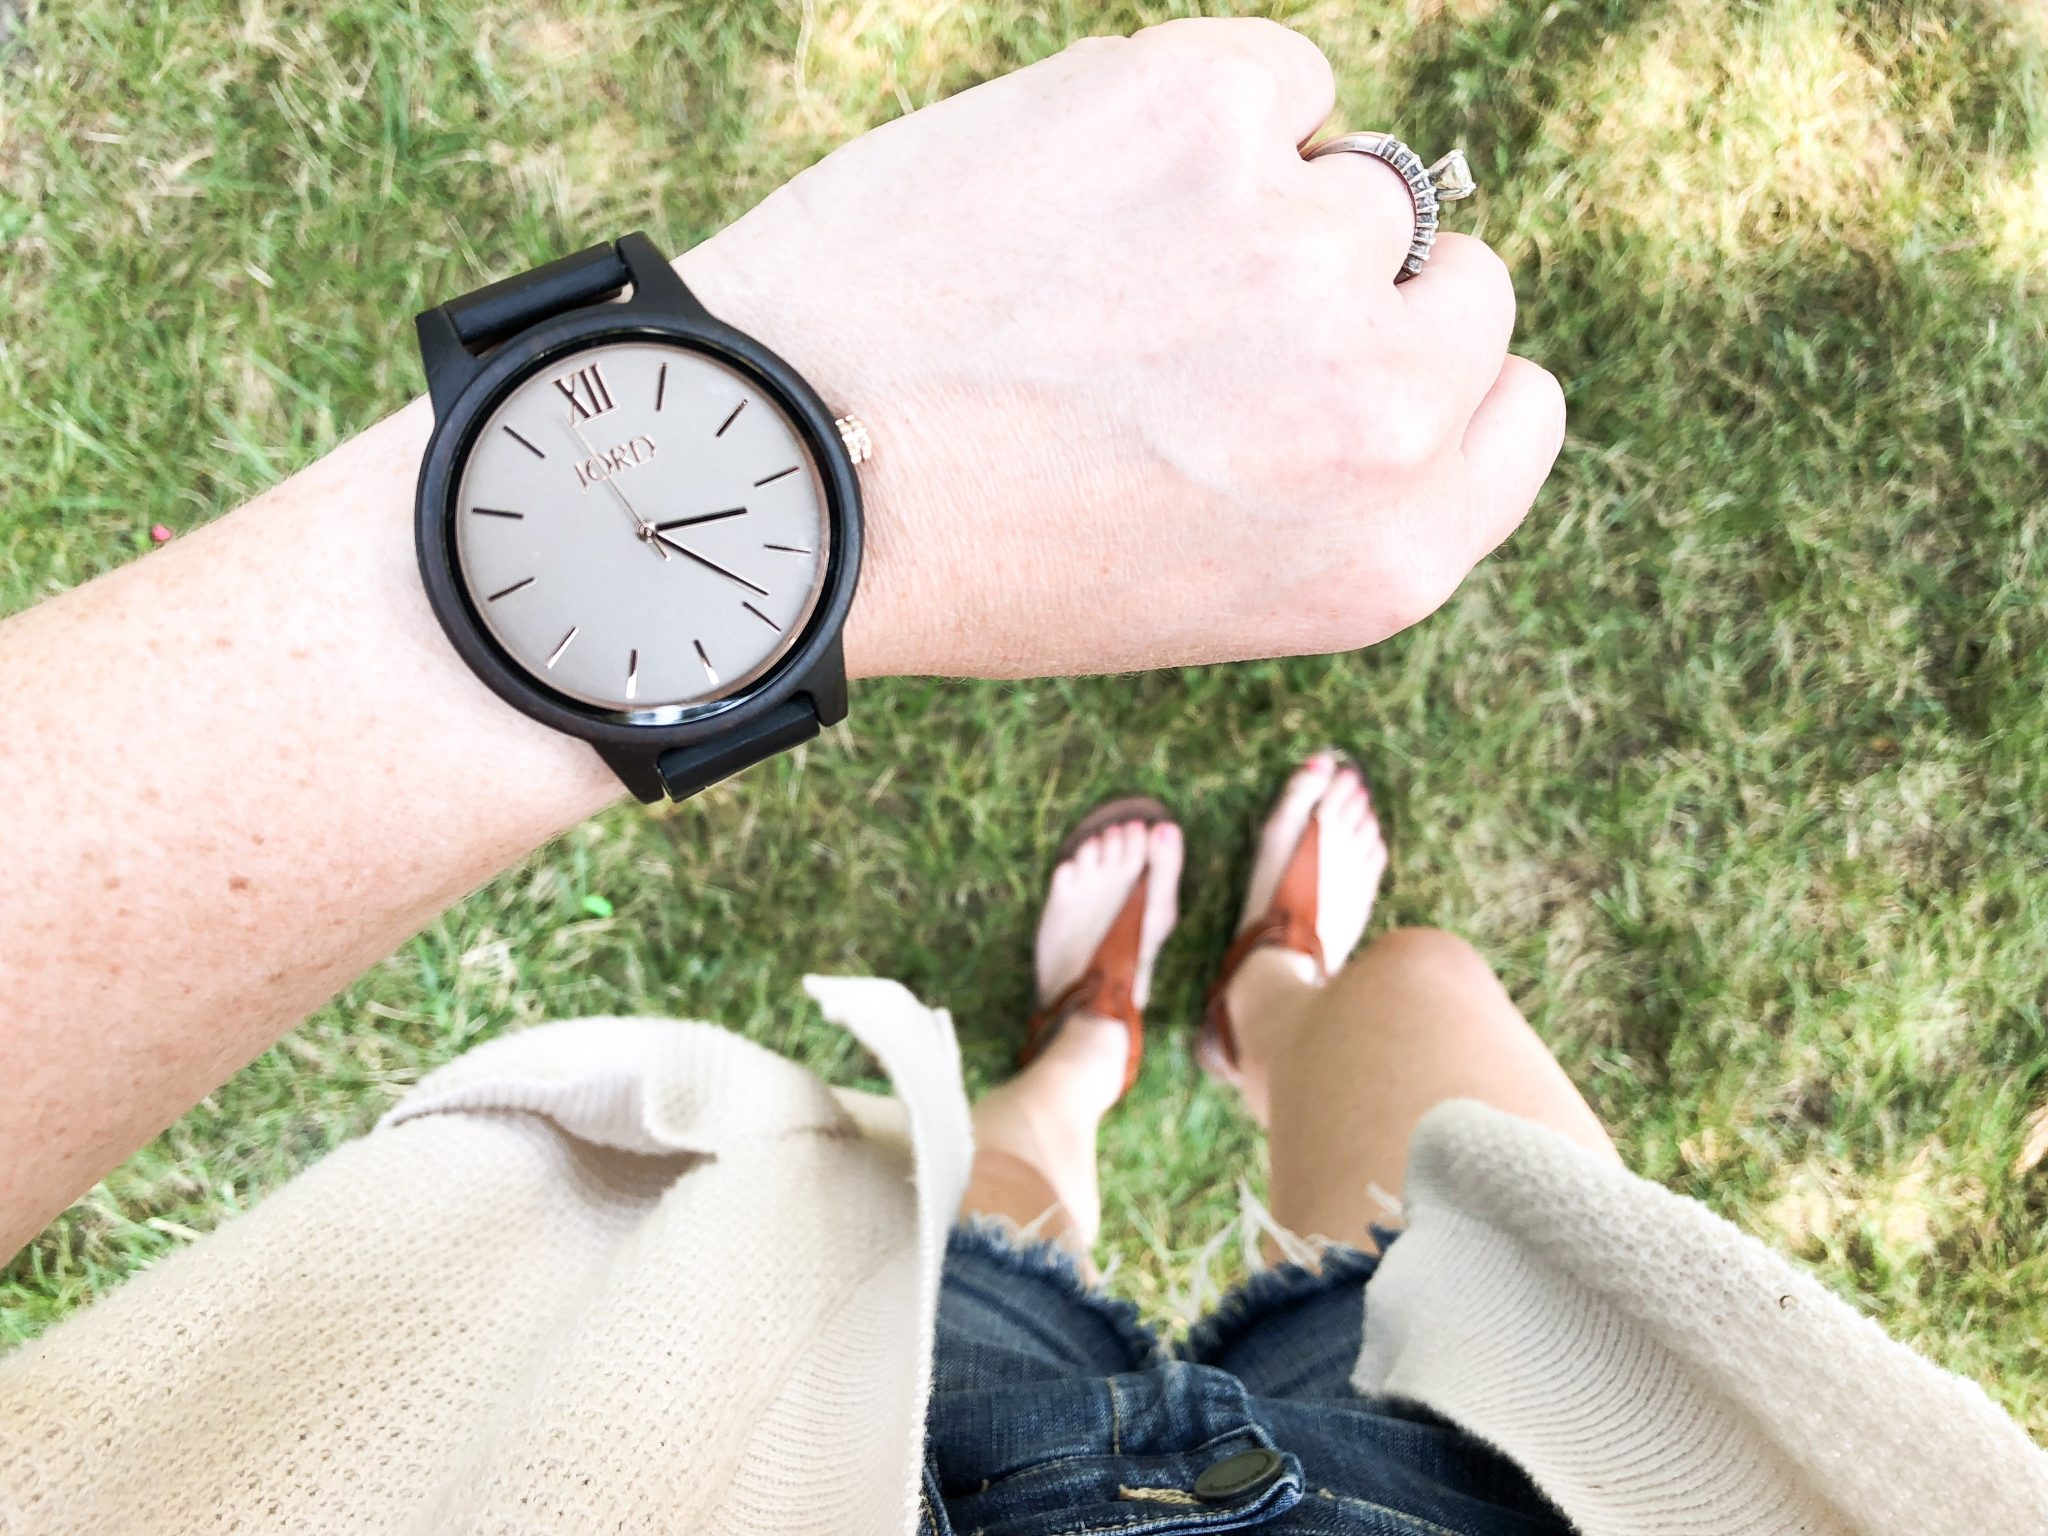 A favorite everyday accessory #jordwatch #woodenwatches